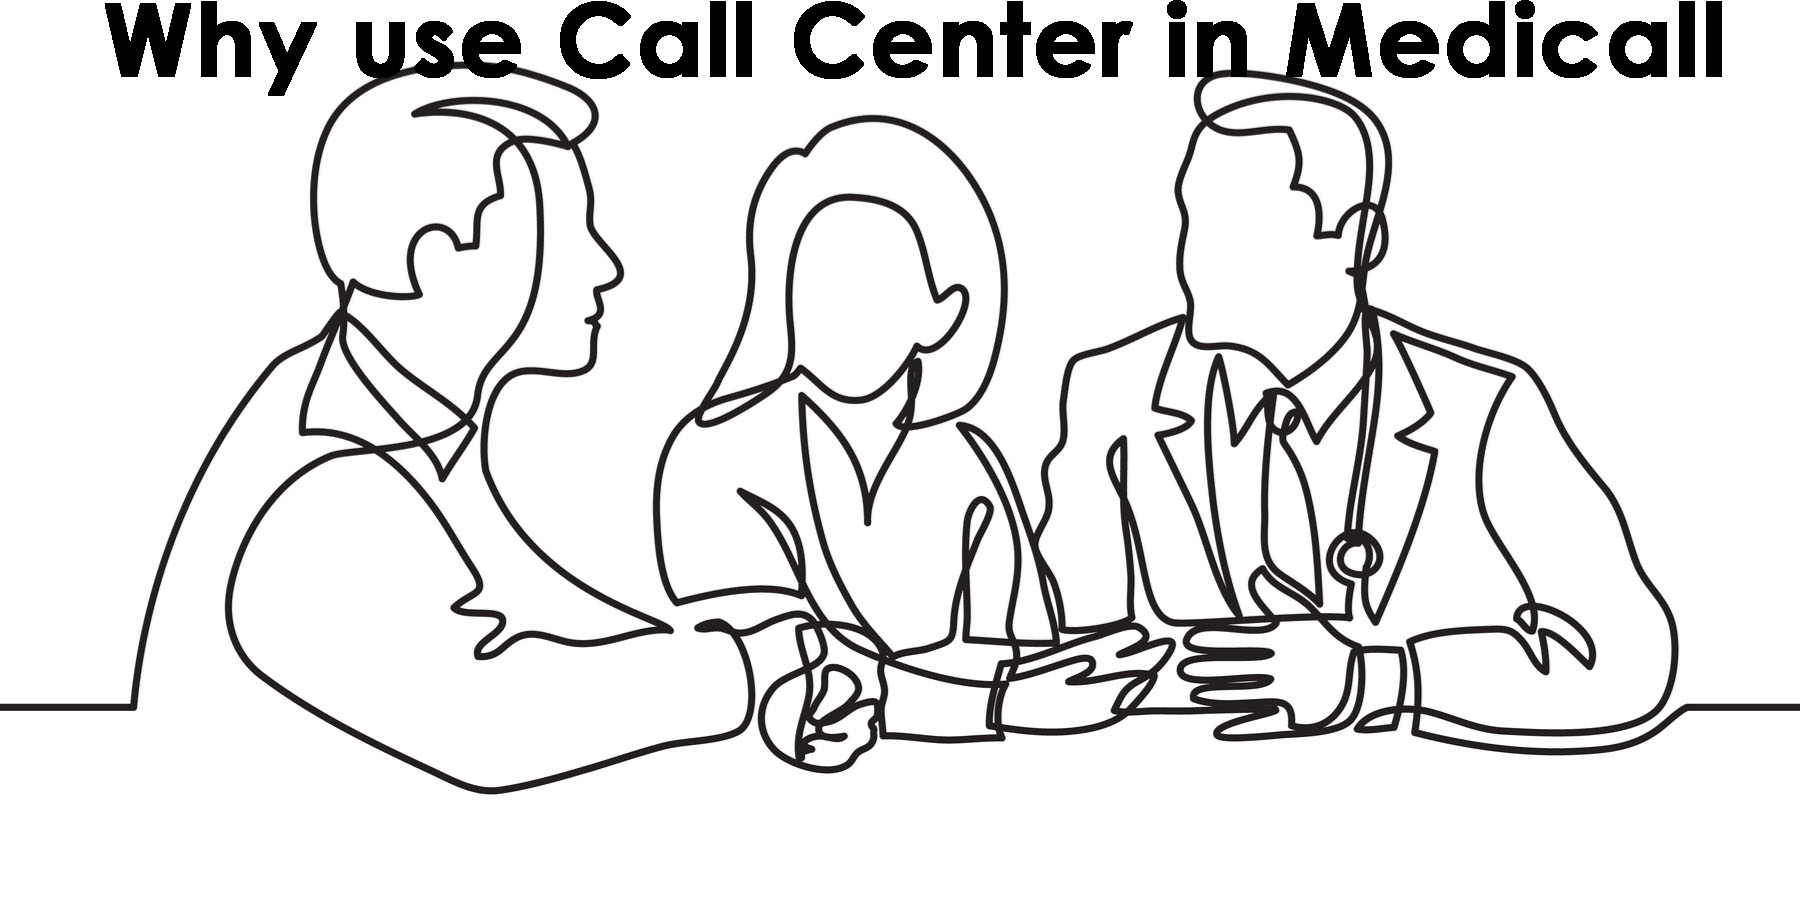 Why use call centers in medicine